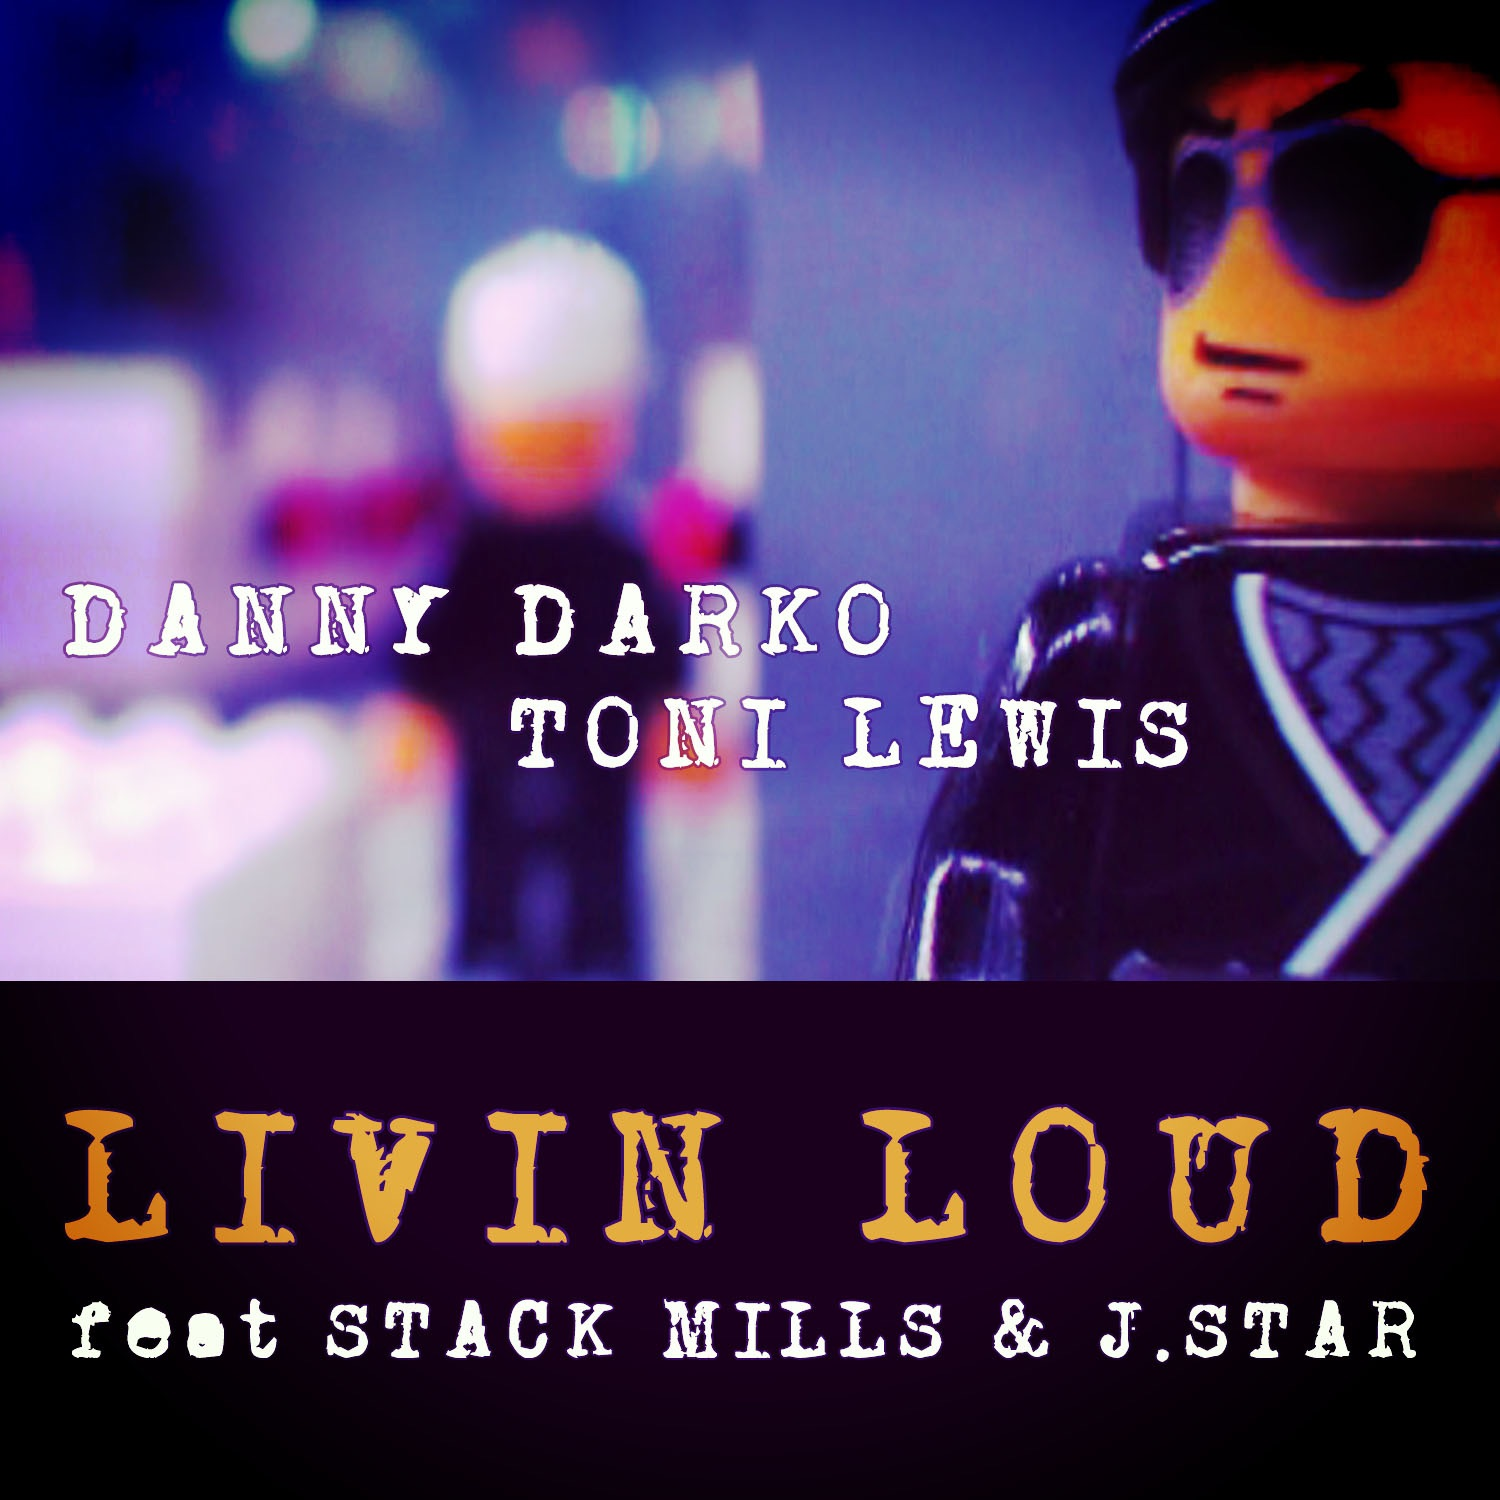 Livin Loud (feat. Stack Mills & J.Star)